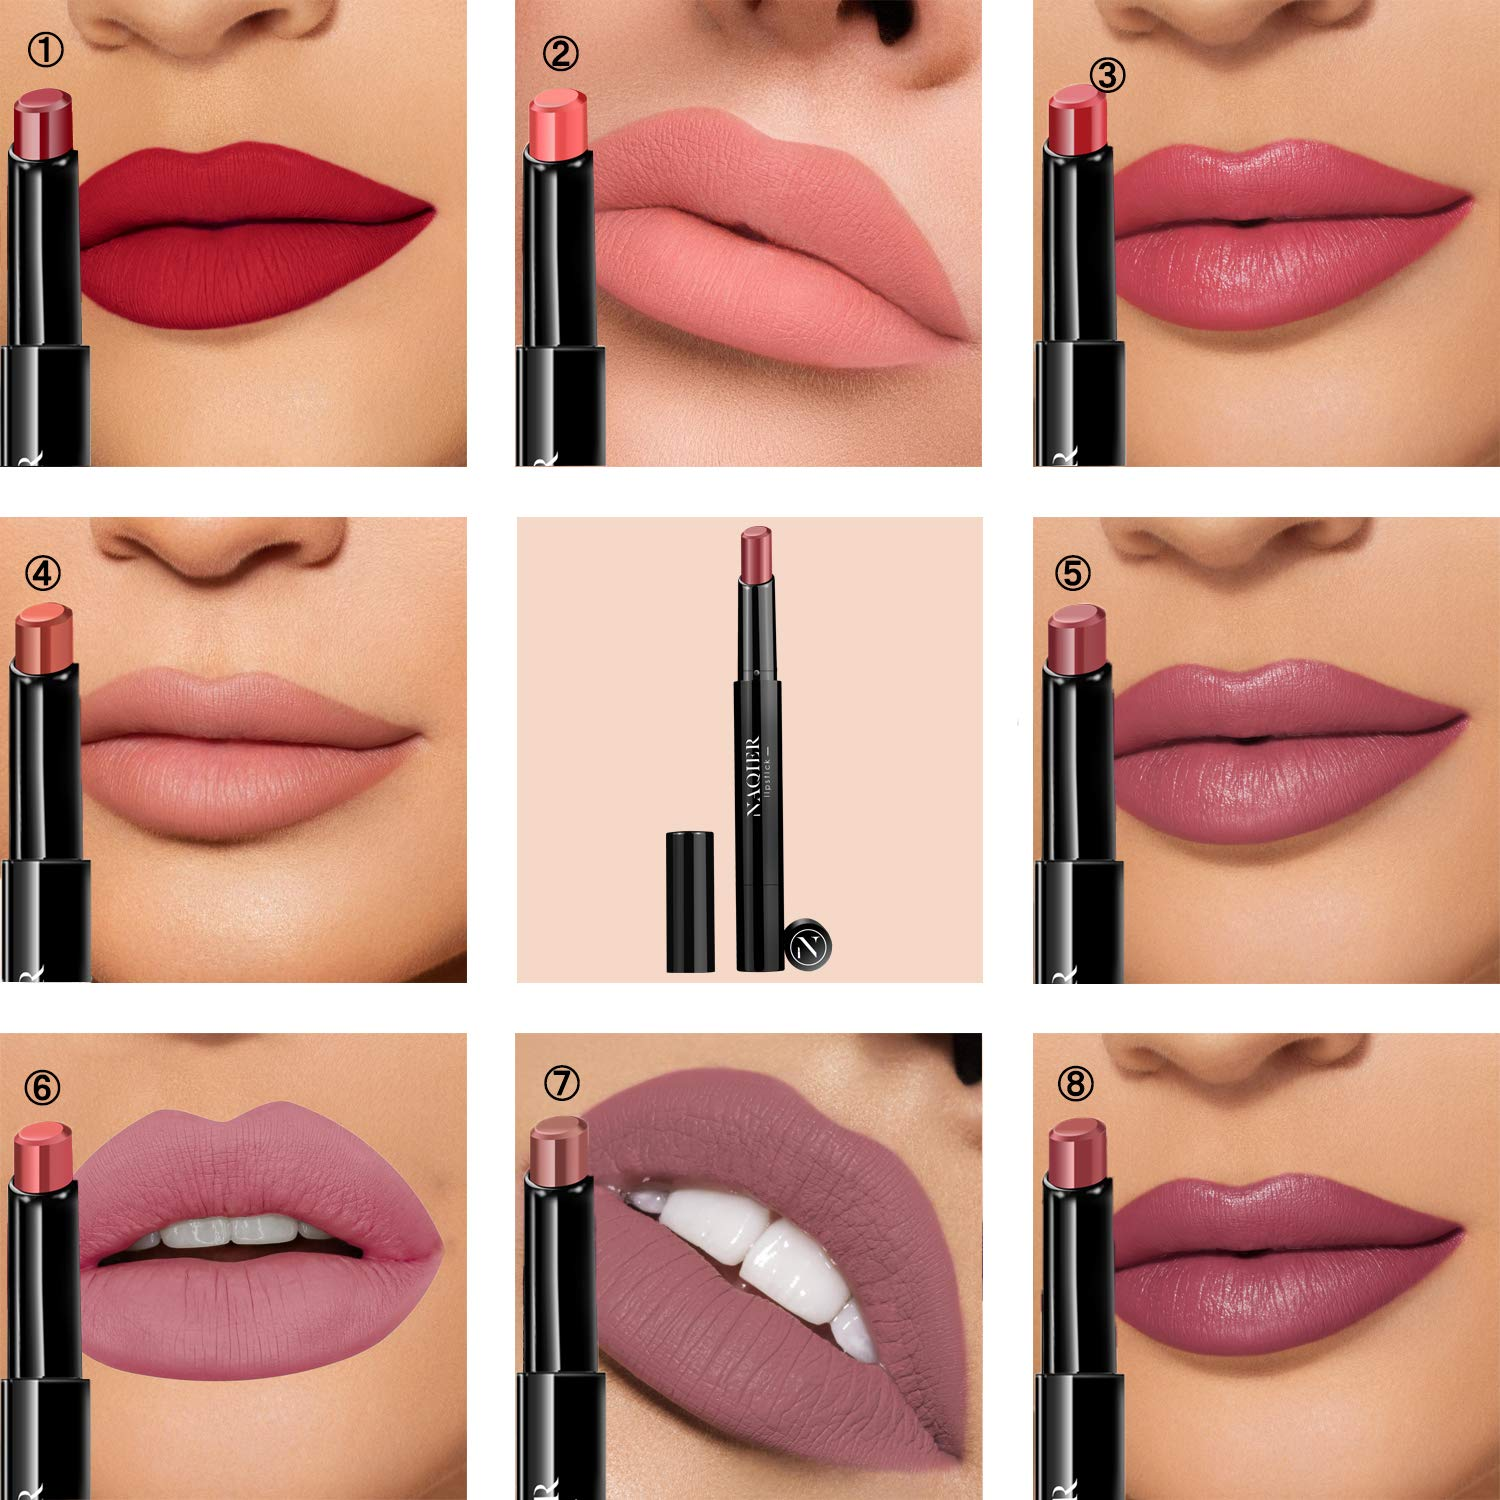 NAQIER Matte Lipstick Set, 8PCS Nude Moisturizer Smooth Lip Stick, Waterproof liquid lipstick mate Make up Velvet lip gloss Cosmetic